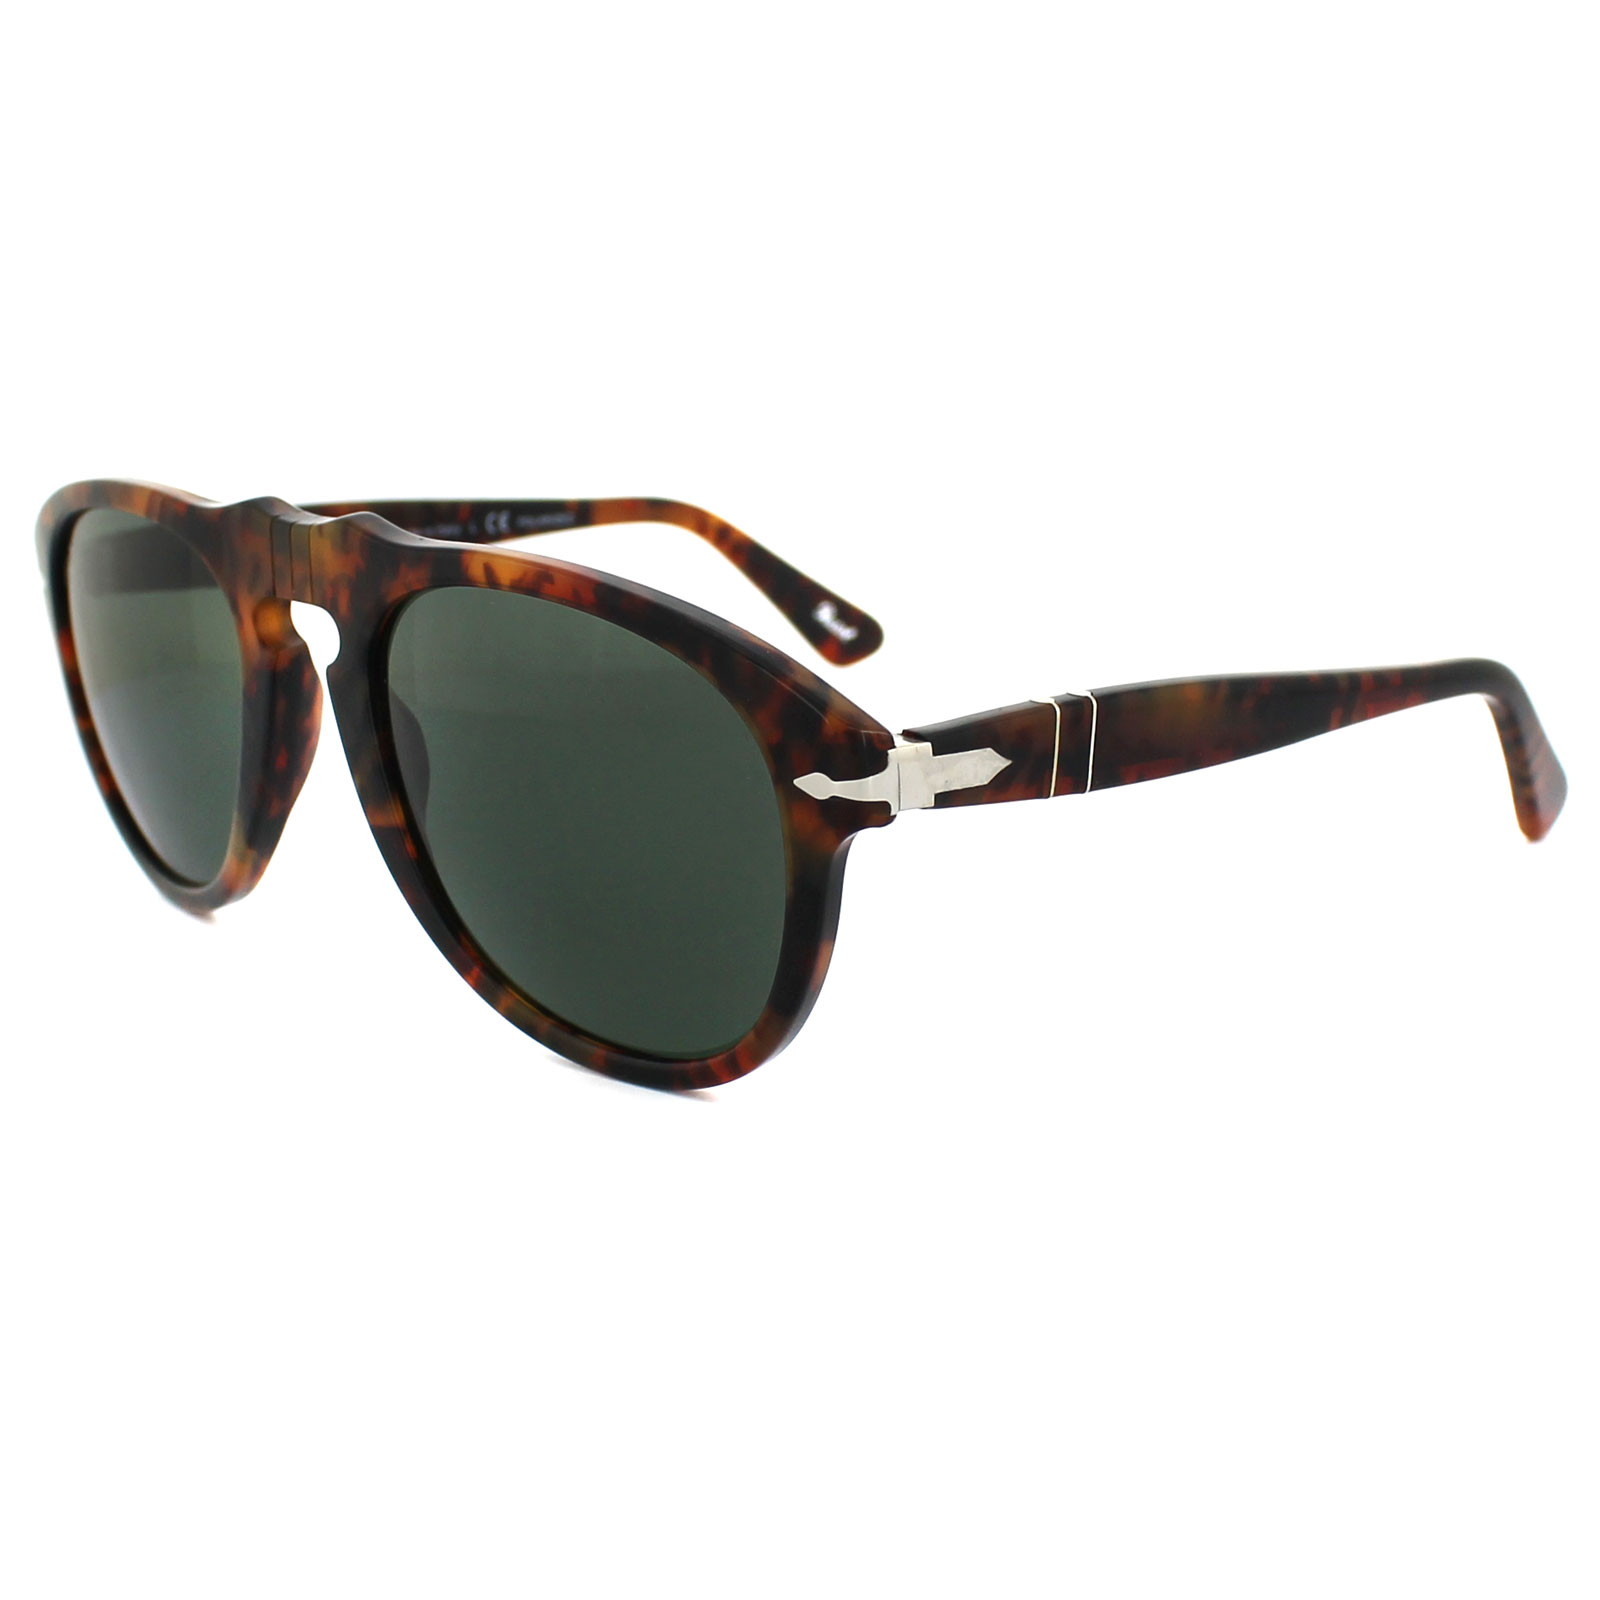 c82bd3326a5 Sentinel Persol Sunglasses 0649 108 58 Spotted Brown Caffe Green Polarized  52mm